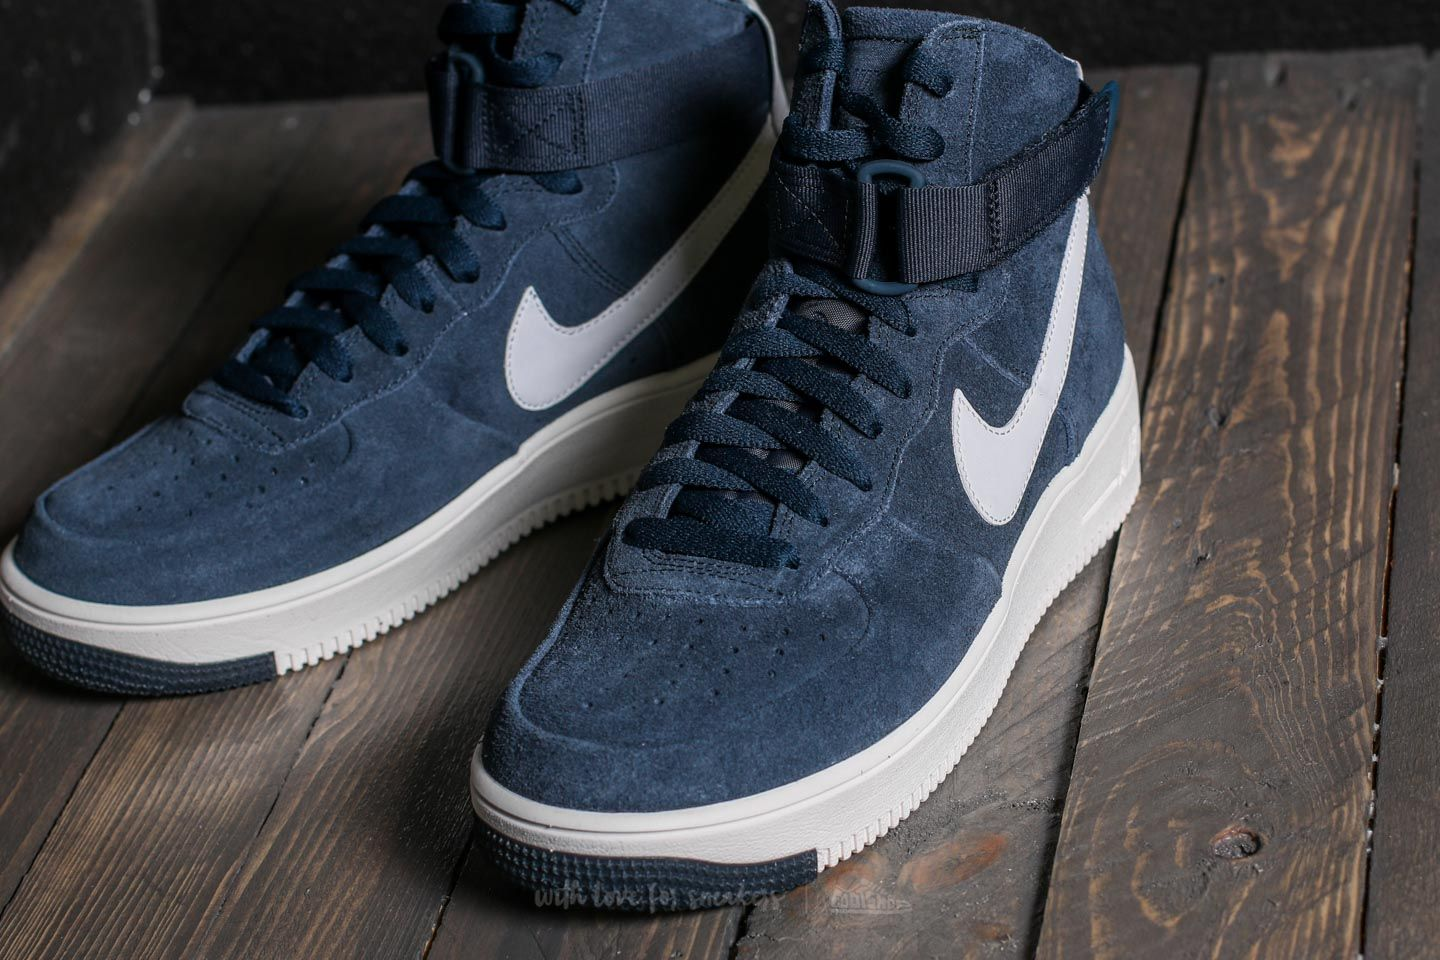 Nike WhiteFootshop Ultraforce Navy Summit Air 1 Hi Force Armory vnmN8wO0